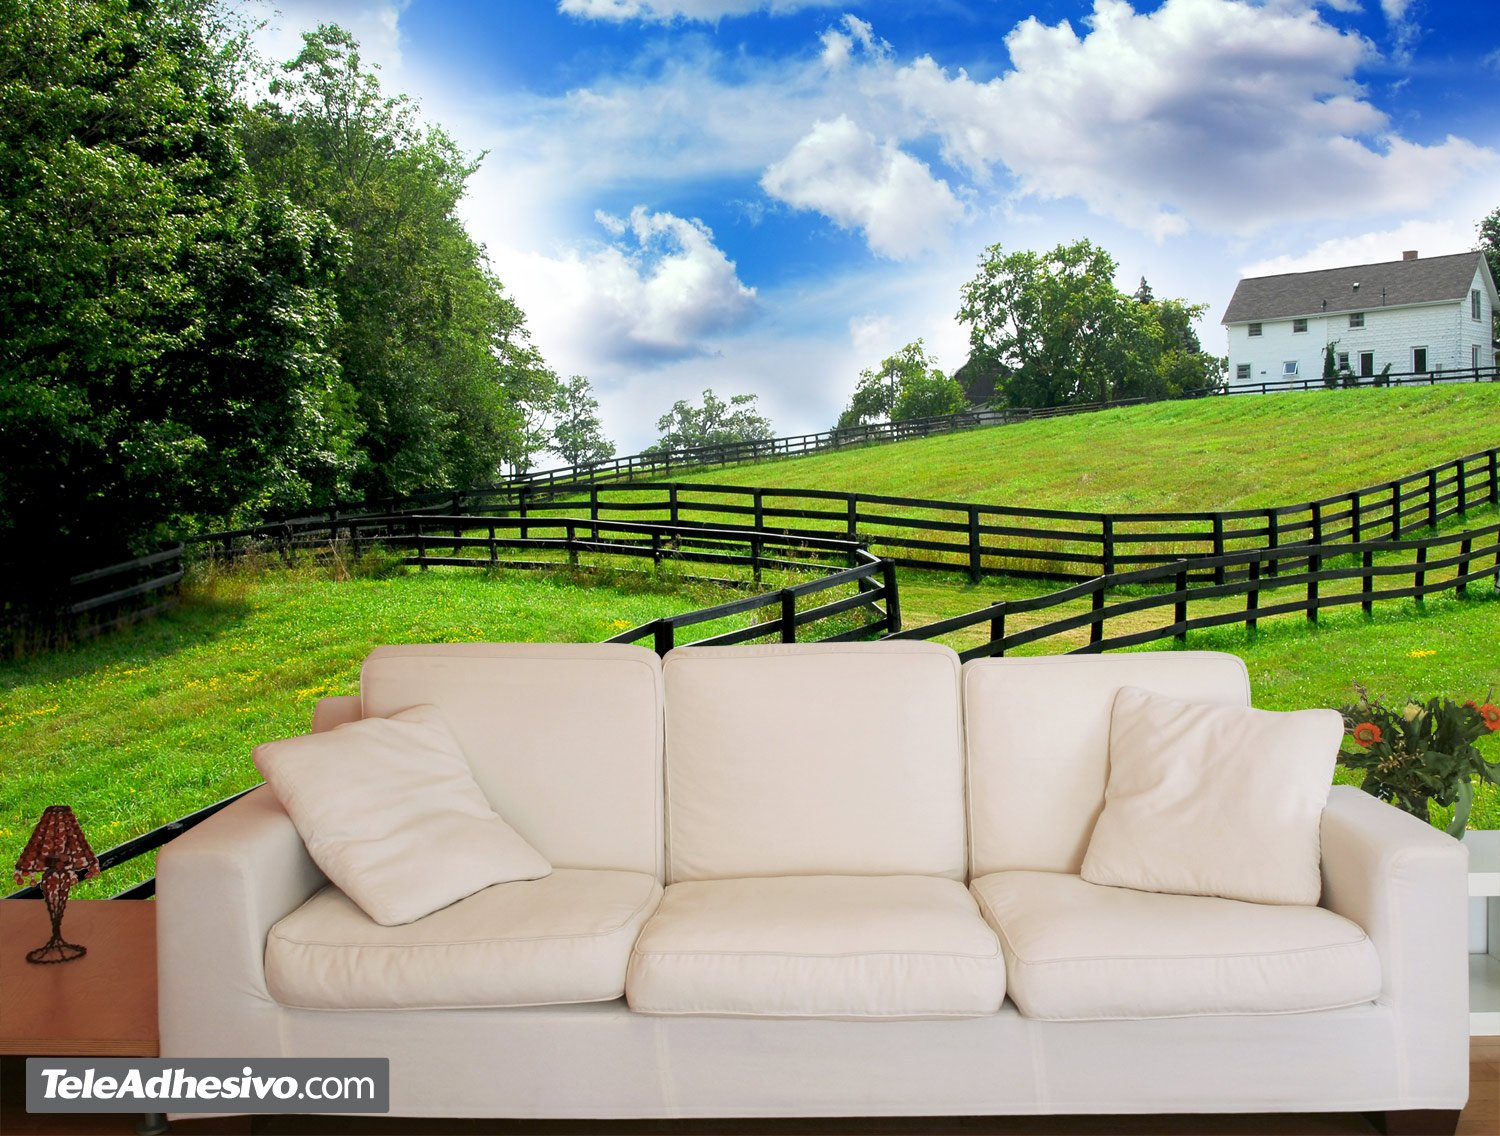 Wall Murals: The farm